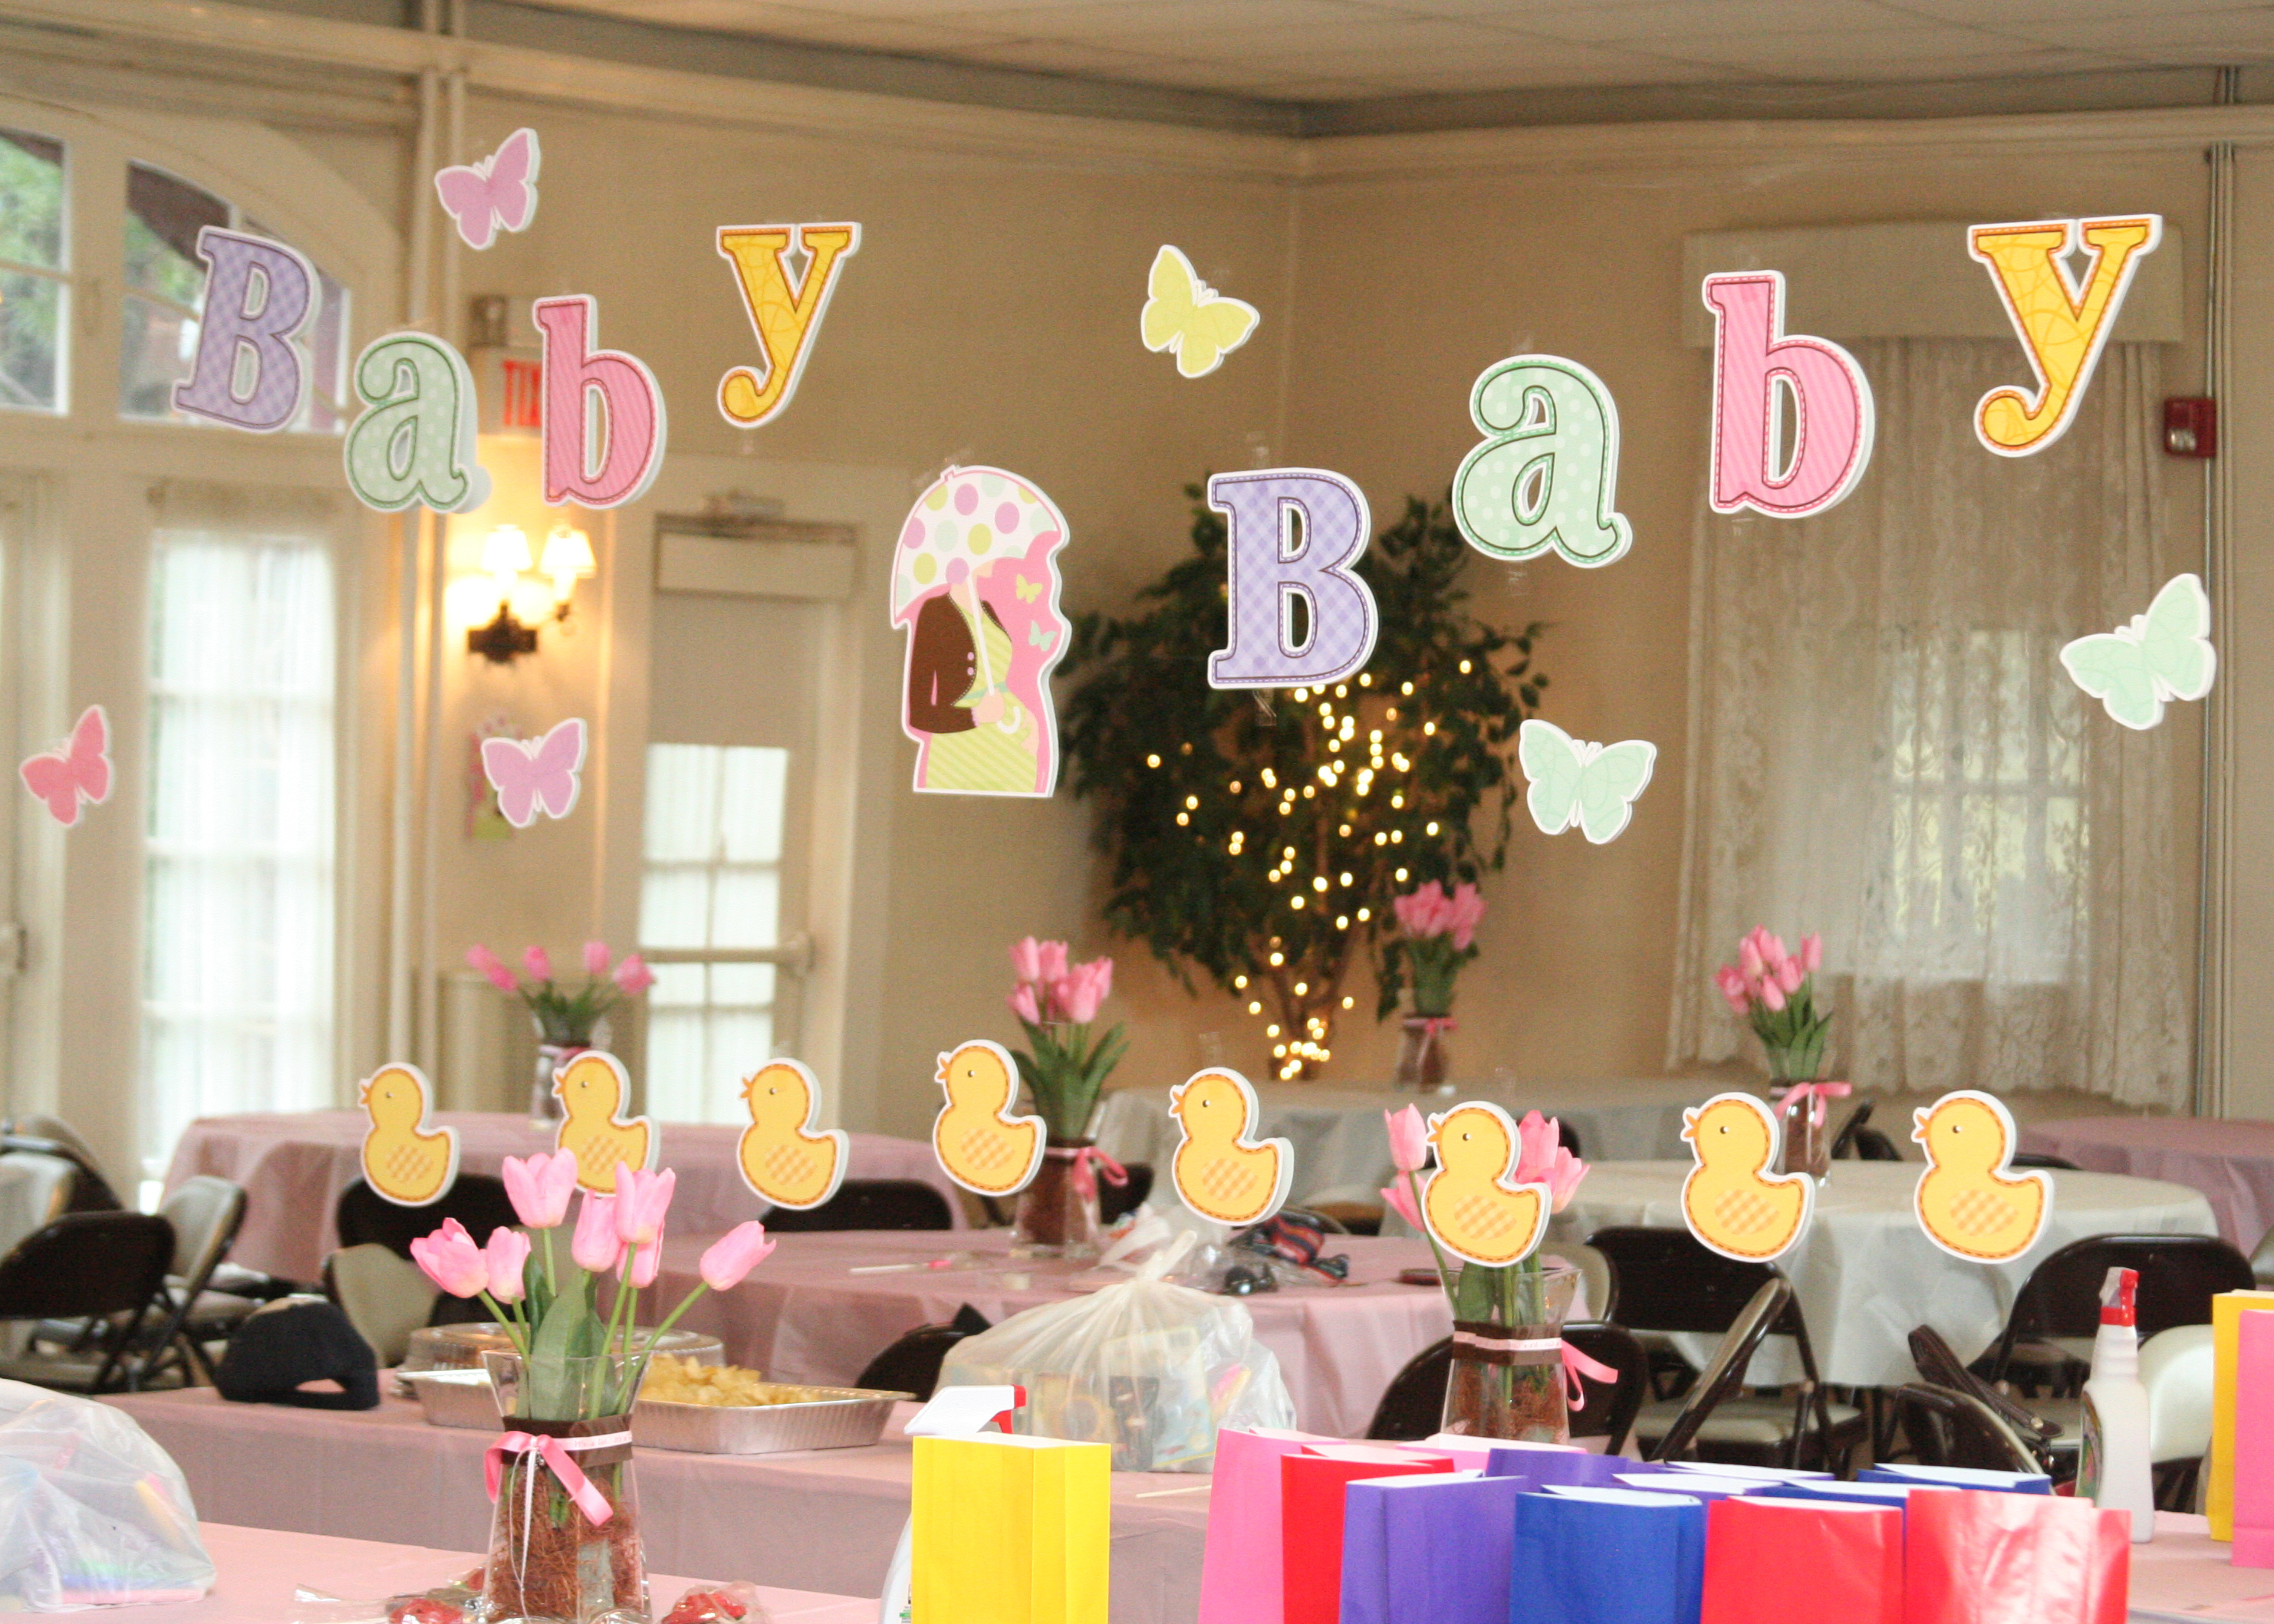 Fancy Unique-Baby-Shower-Venues-Arielina-Baby-Shower-Hall-Place-Englewood inside Luxury Baby Shower Venues